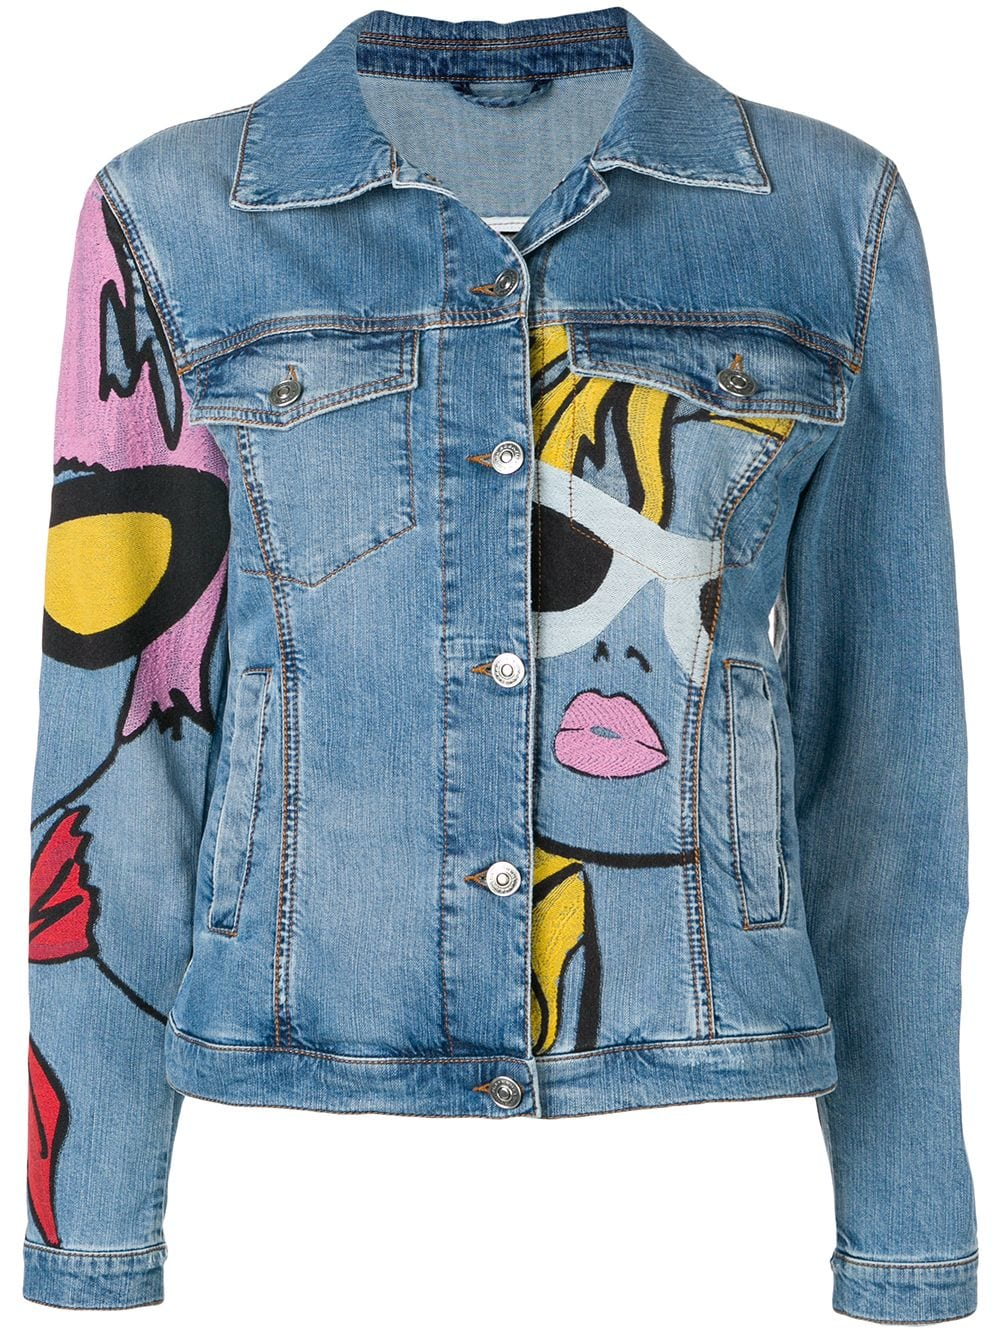 Ermanno Scervino Painted Denim Jacket - Farfetch